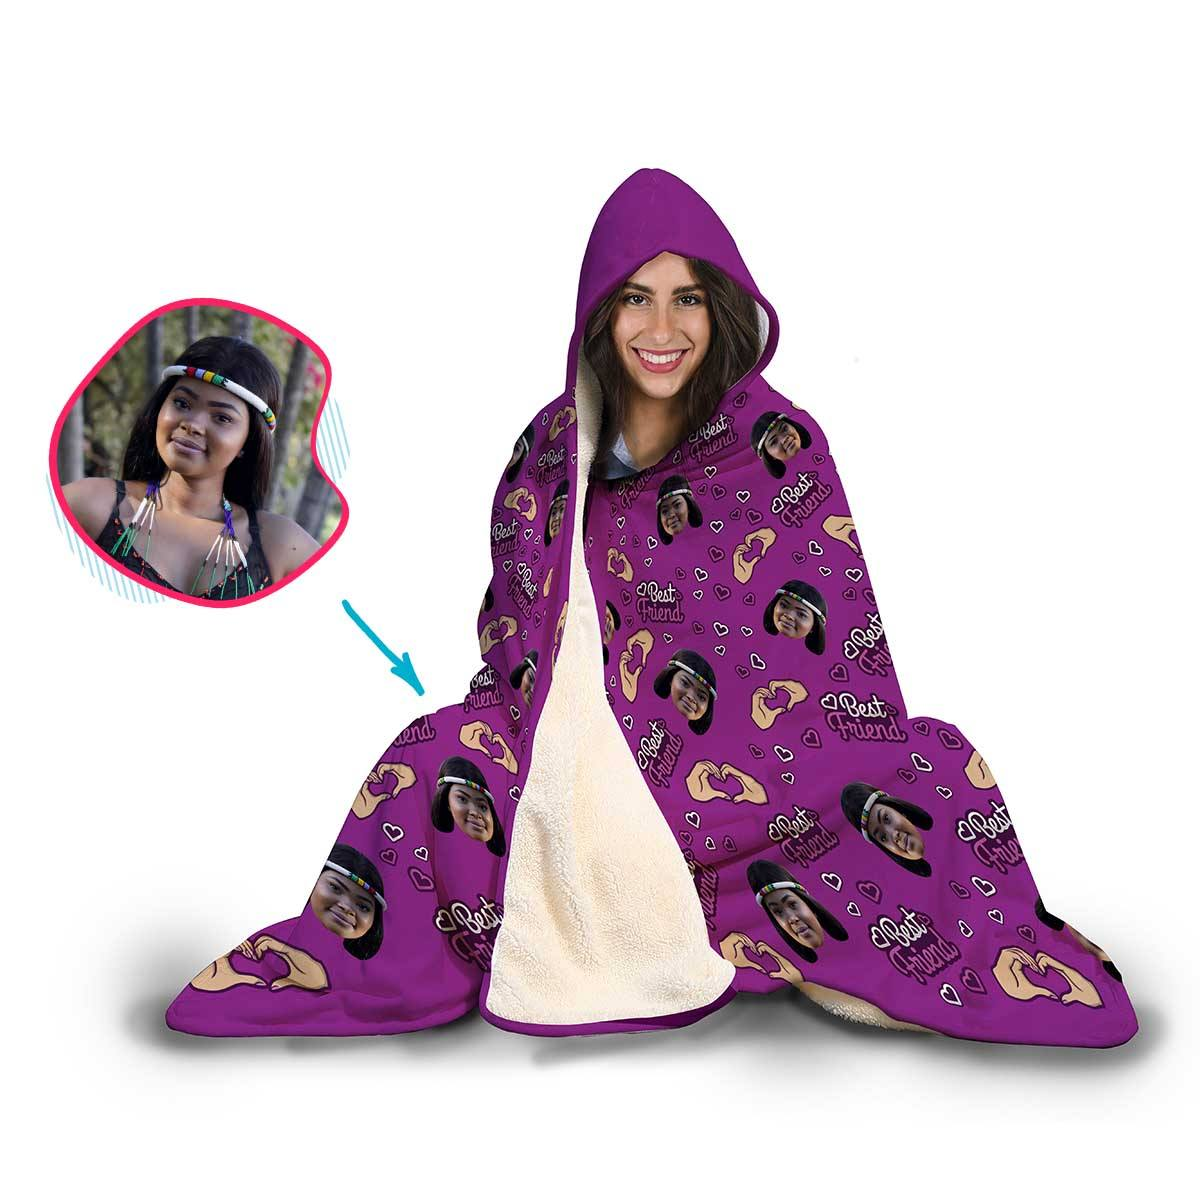 BFF for Her Personalized Hooded Blanket